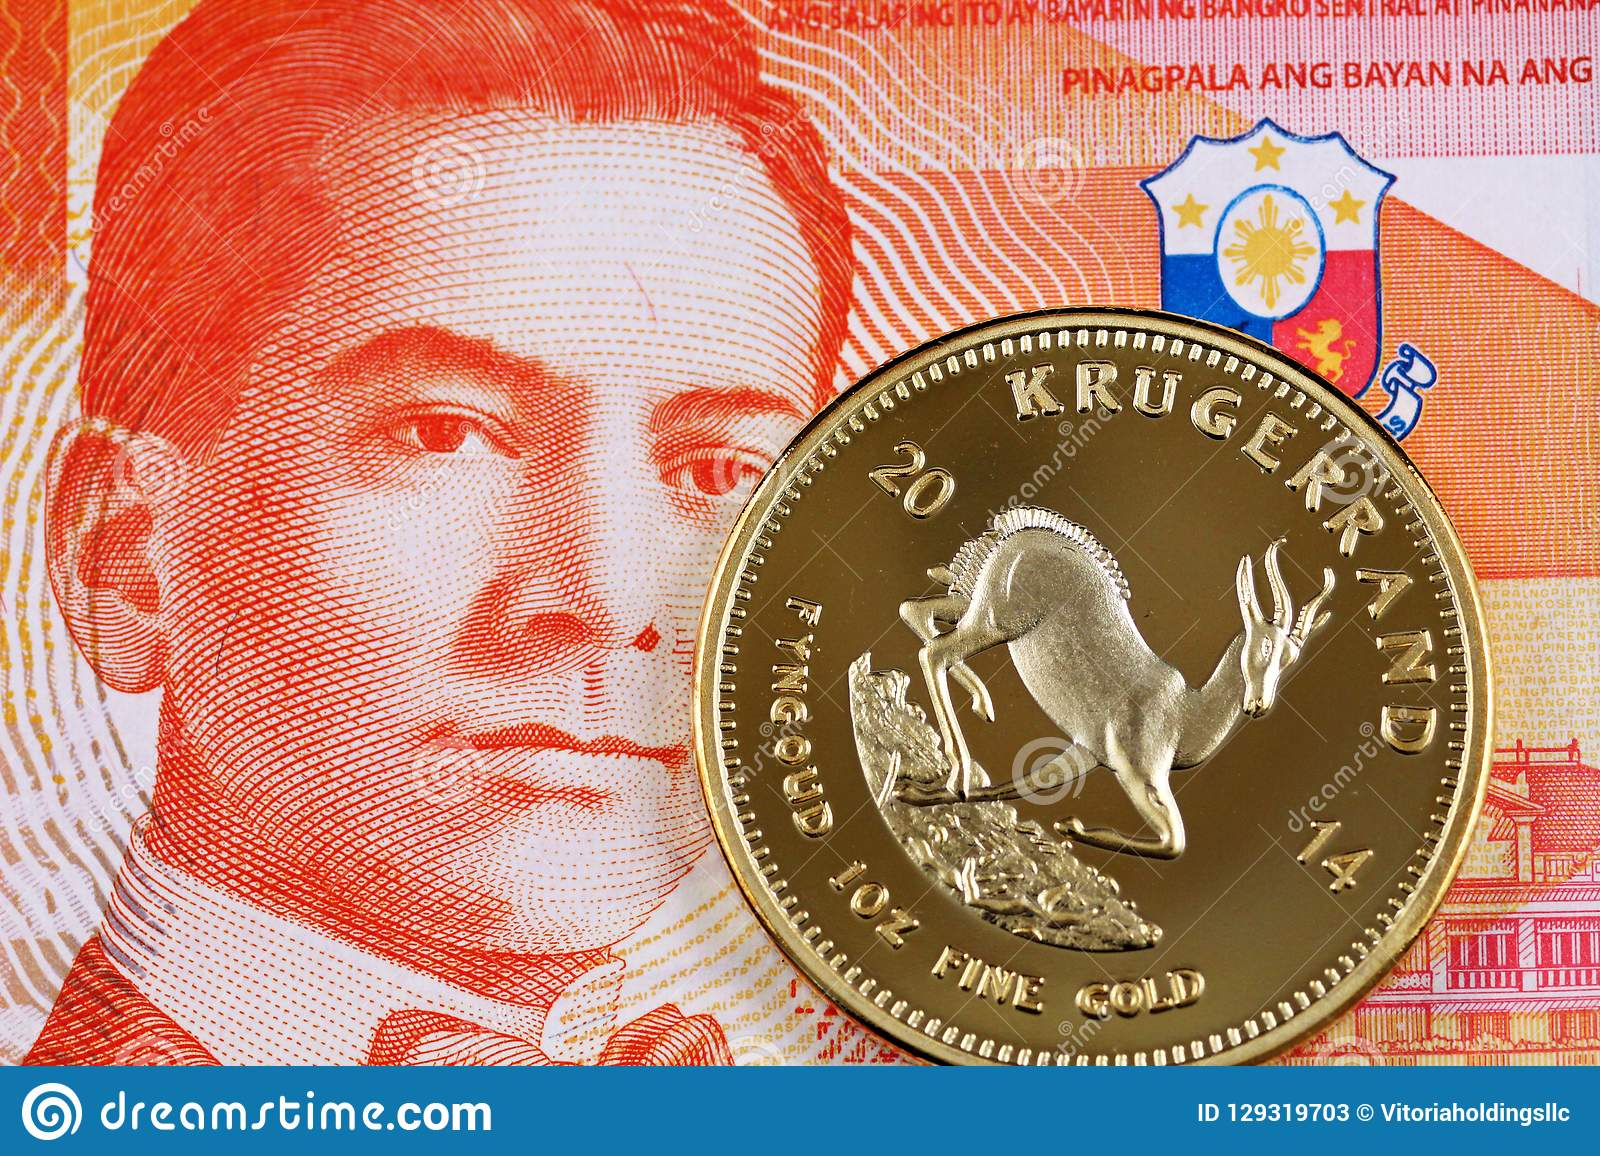 Twenty Filipino Peso Bank Note With A Krugerrand Coin